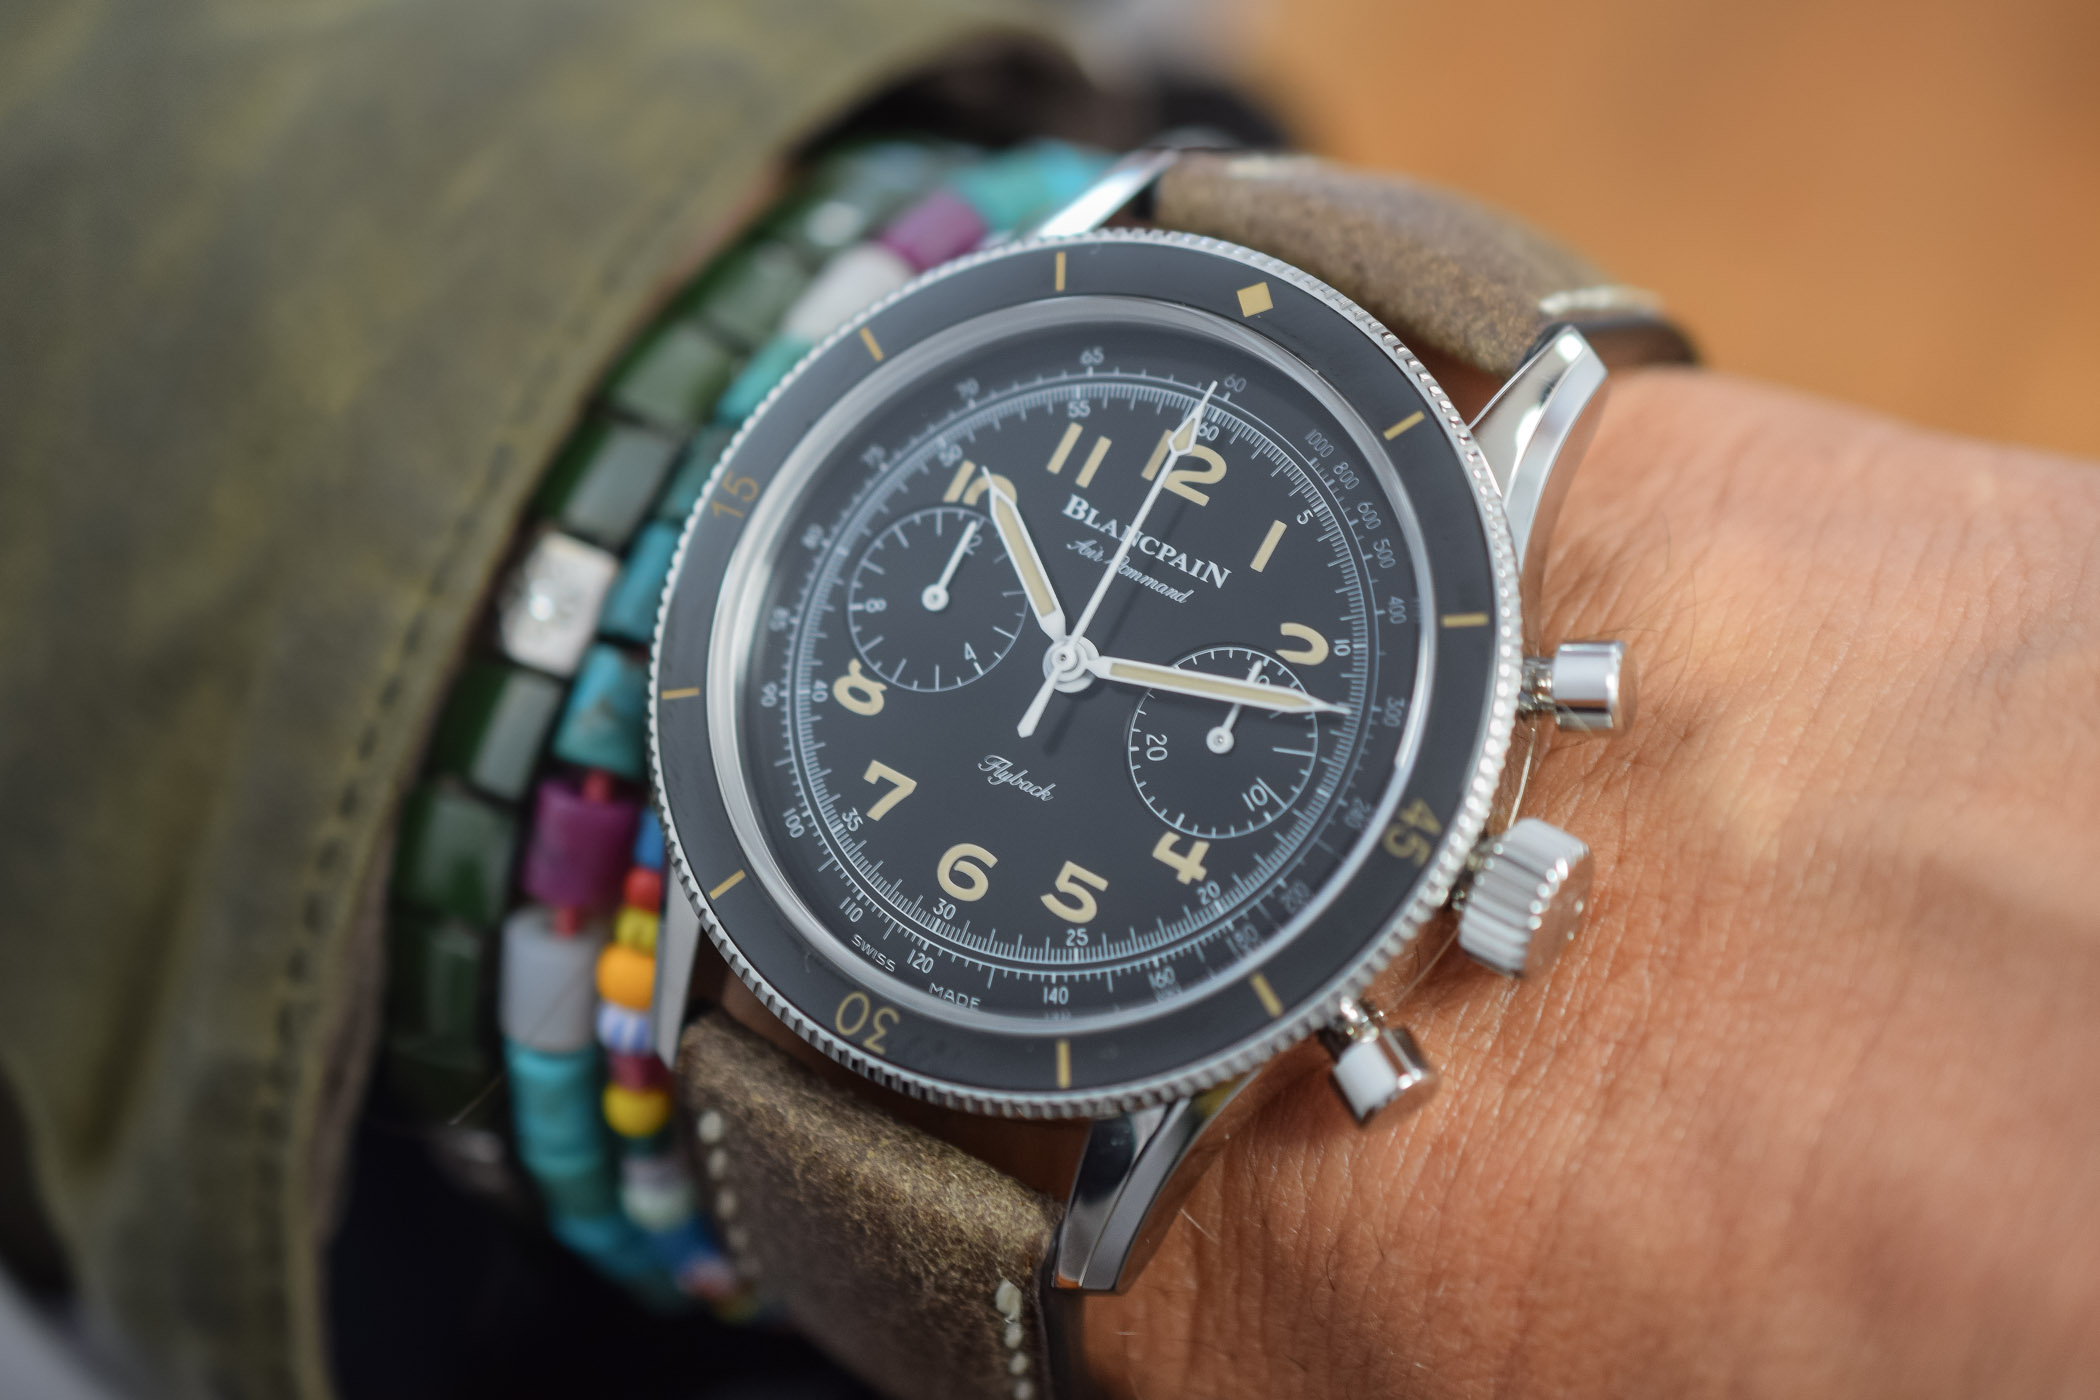 Blancpain Air Command Chronograph Re-Edition 2019 reference AC01-1130-63A